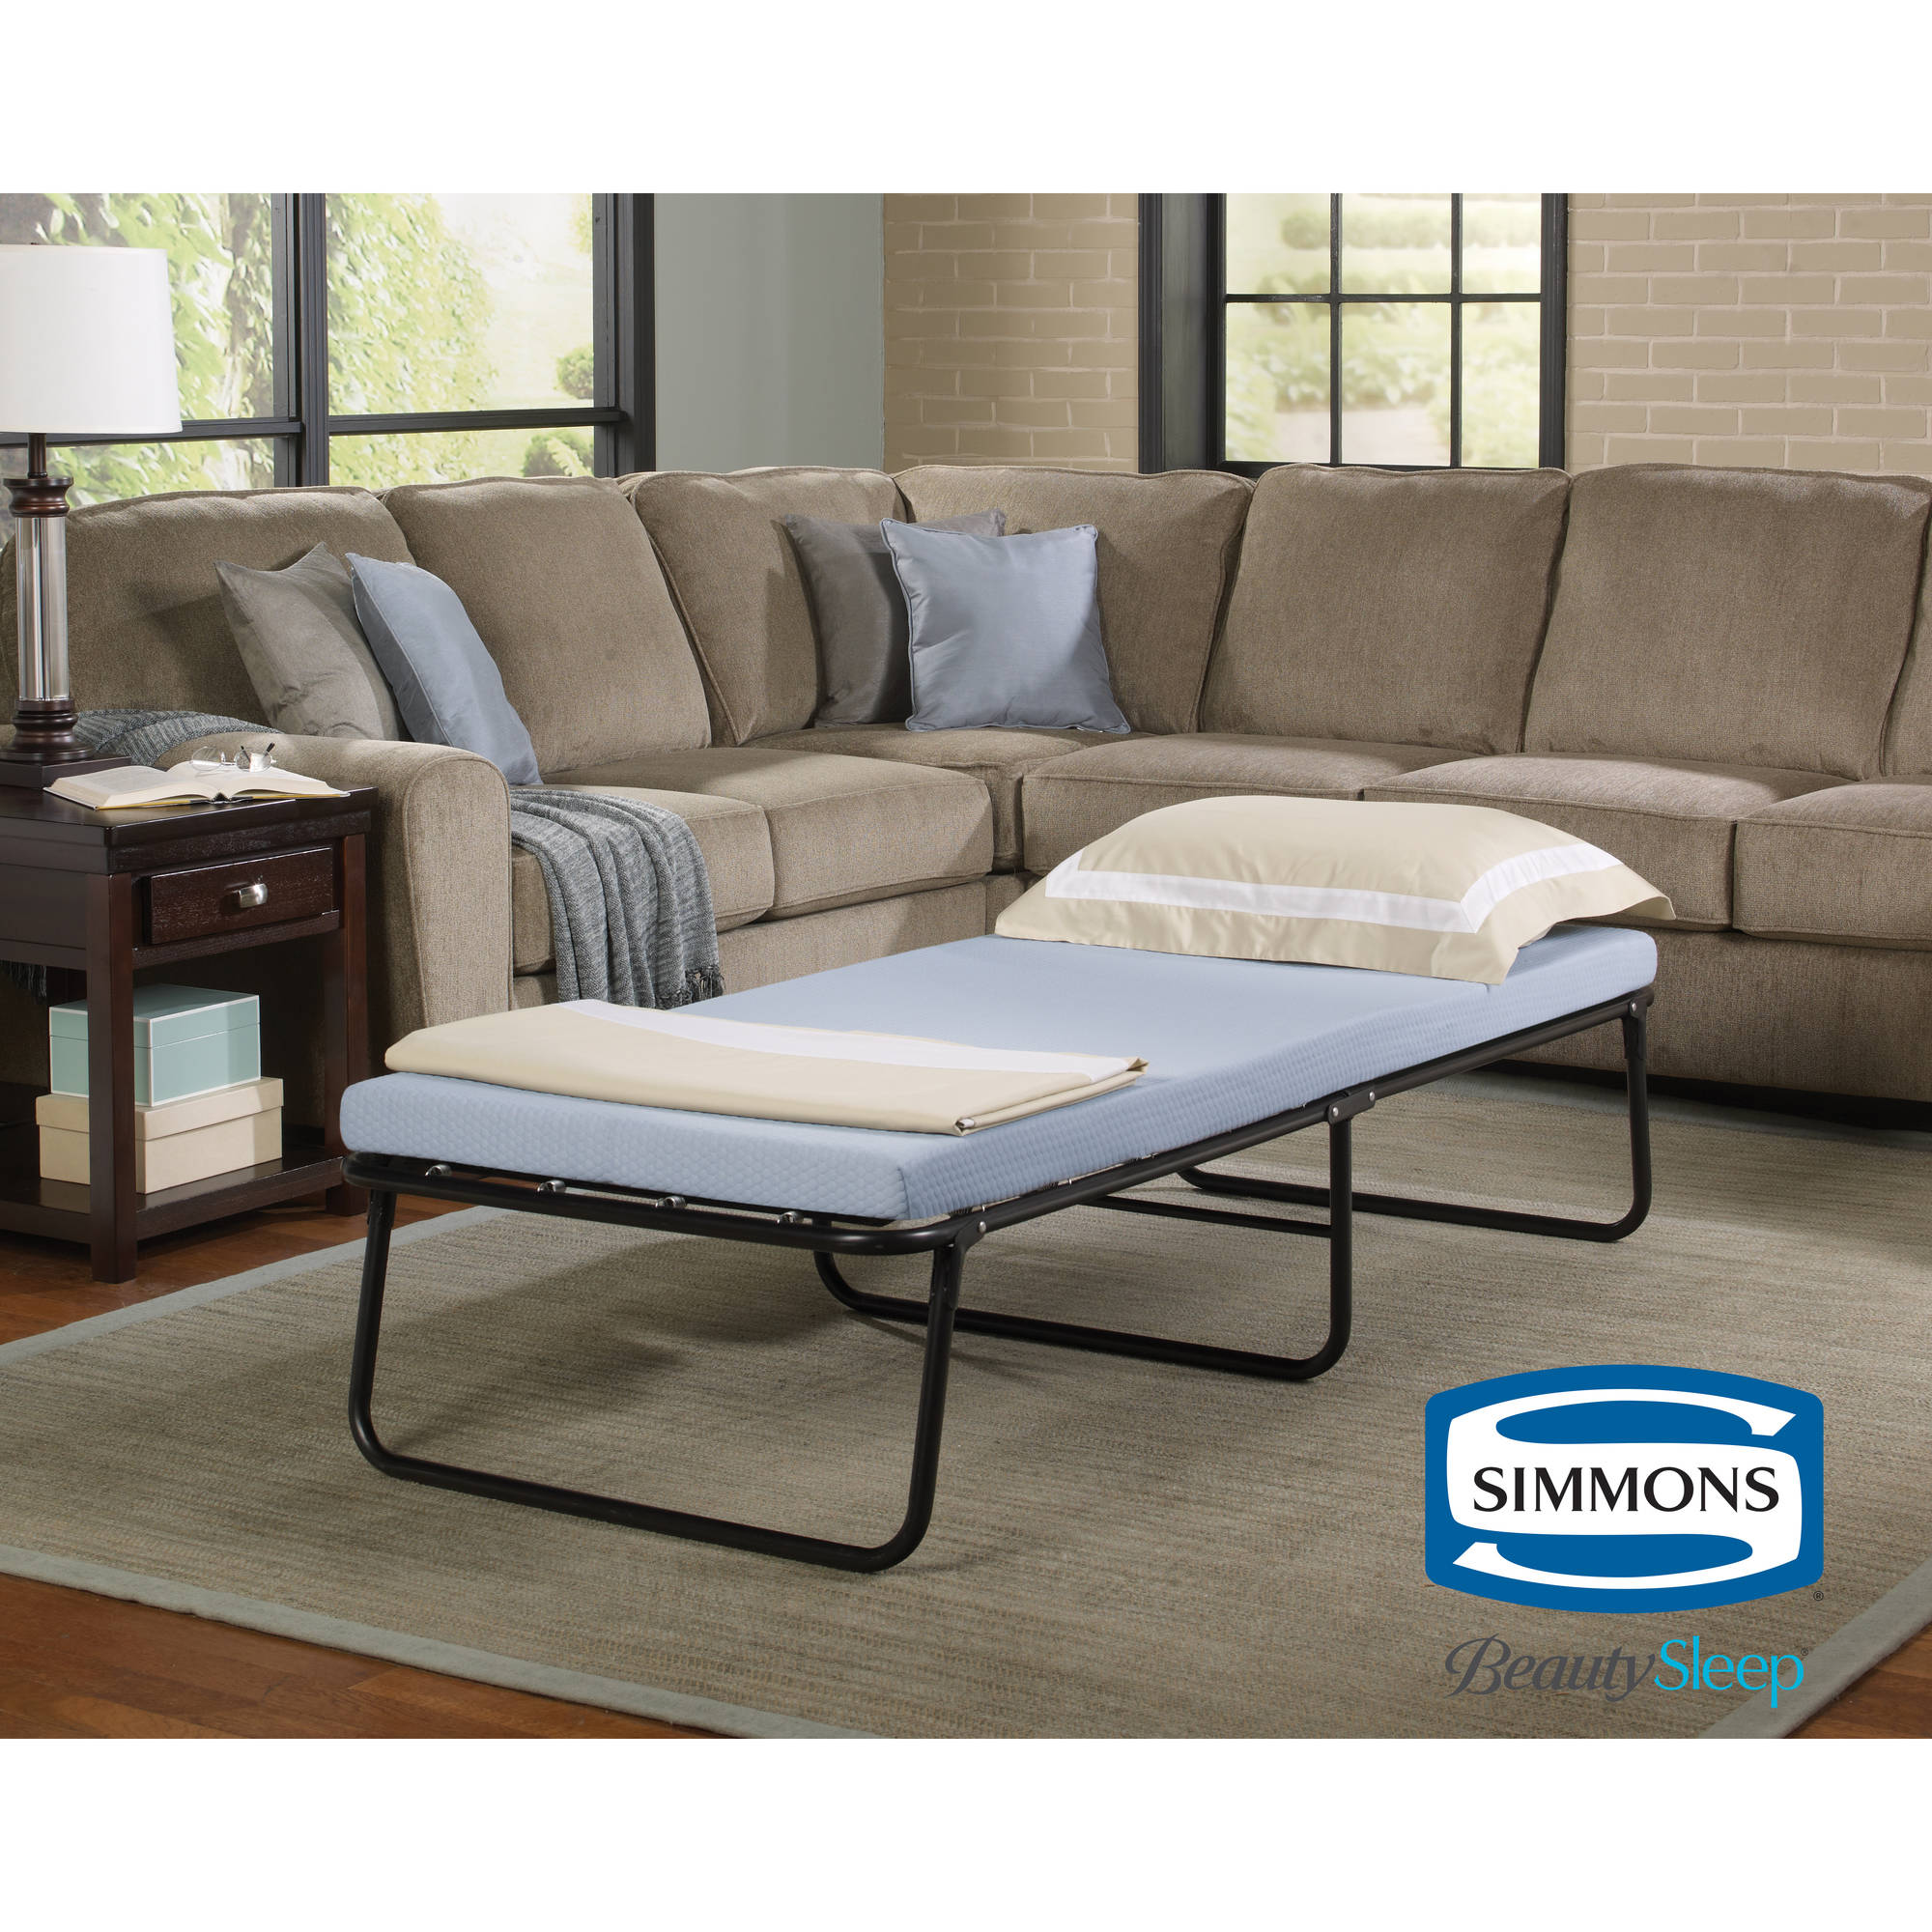 simmons beautysleep folding foldaway extra portable guest bed cot with memory foam mattress multiple sizes walmartcom